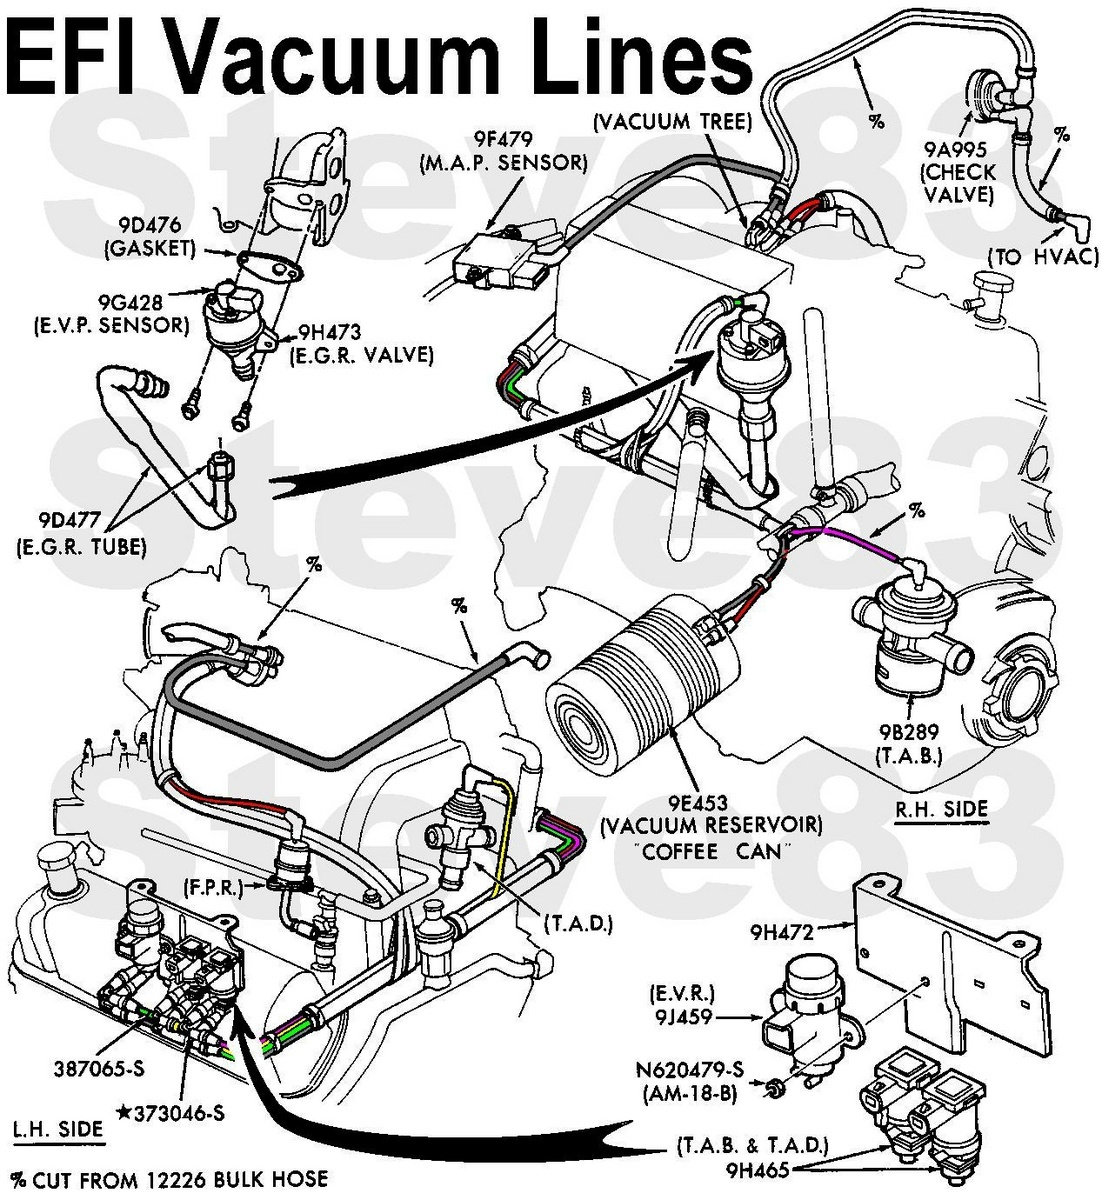 Rear Brakes Over Adjusting as well T22737773 Wheres fuel pump fuses located moreover Chevy 4 3 5 7l Vortec Engine Wont Start Unless Spray Starting Fluid Down Throttle Body  1472 moreover 2000 Ford E250 Cargo Van Fuse Panel Diagram together with RepairGuideContent. on 1988 toyota four